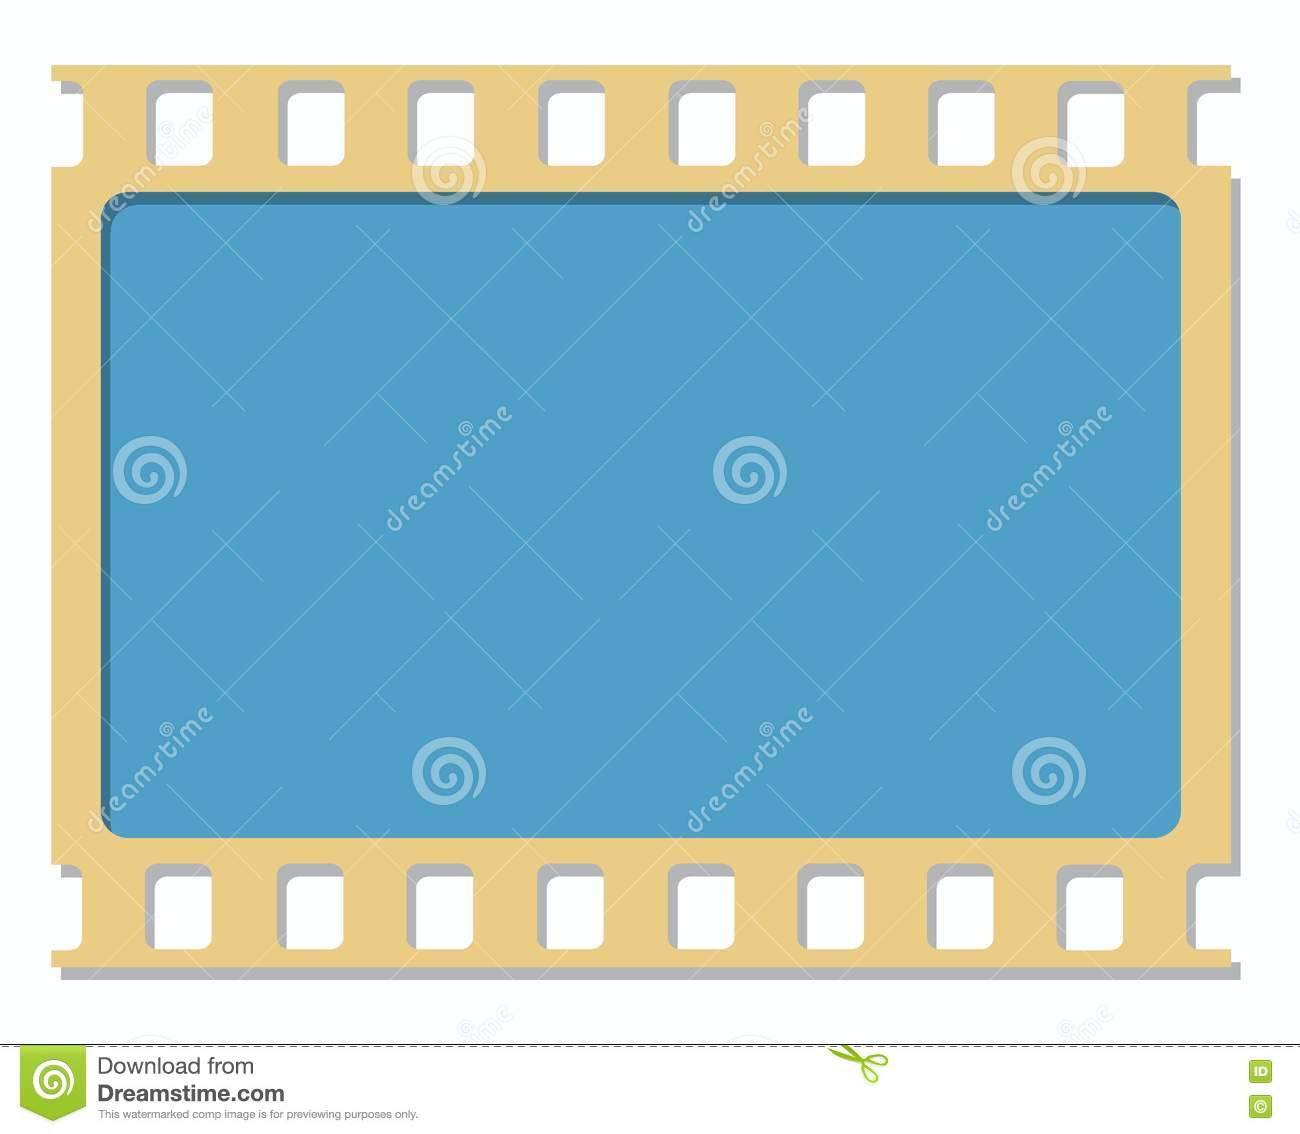 35mm Film Frame Picture  Image: 3973256